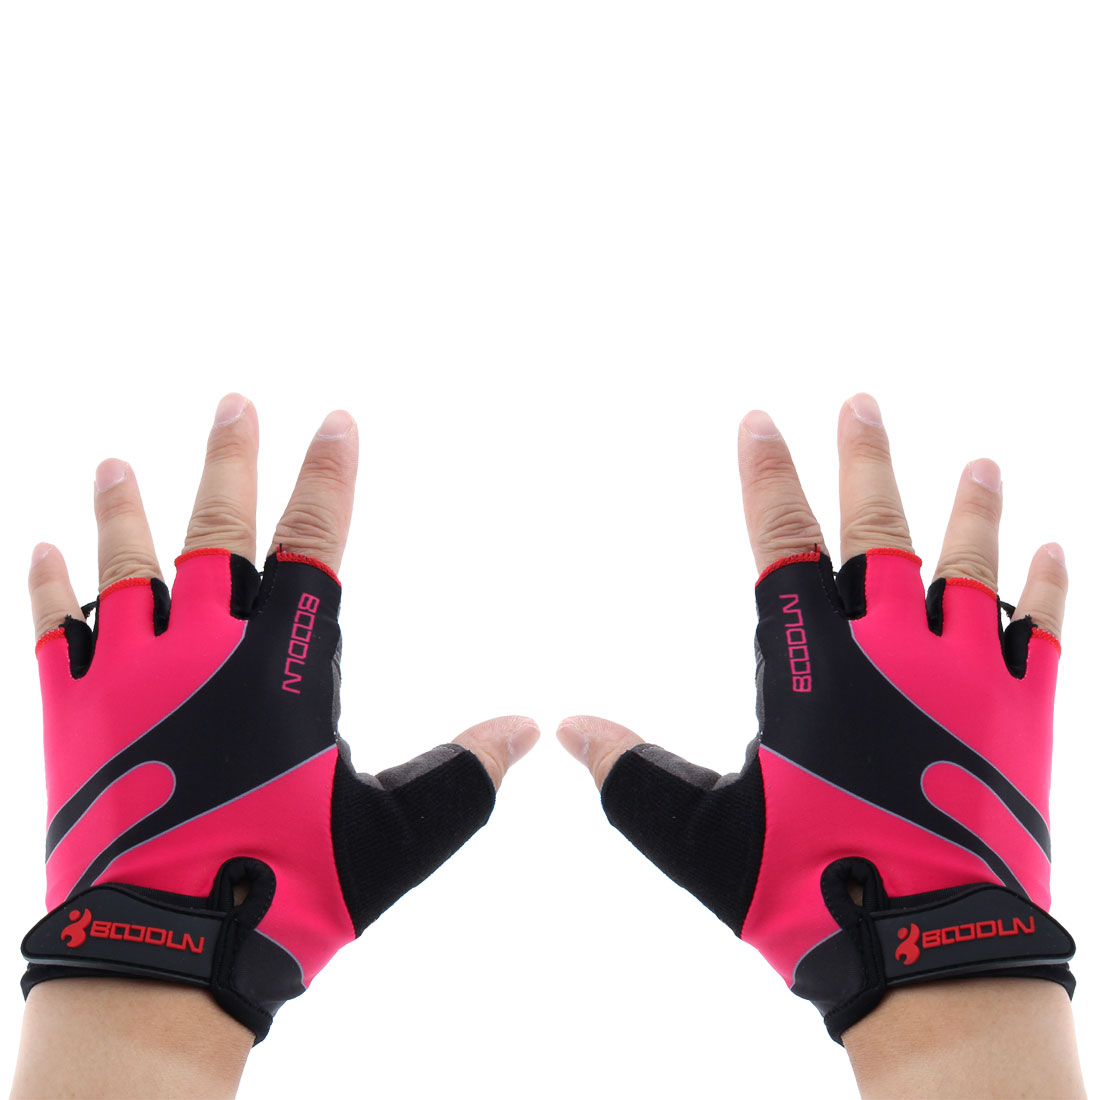 BOODUN Authorized Polyester Exercise Sports Lifting Training Bodybuilding Wrist Protector Half Finger Fitness Gloves Fuchsia S Pair